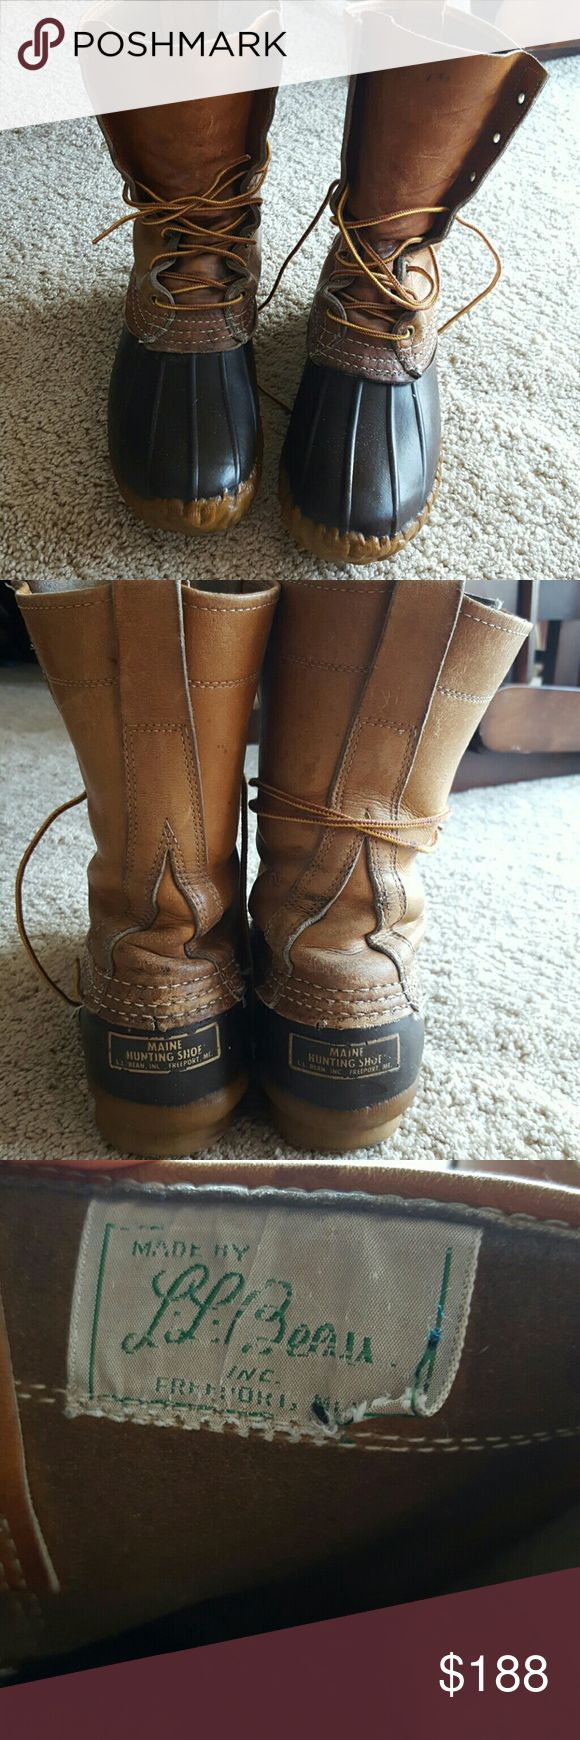 L.L.Bean boot Brown LL bean boots hunting style Women's size 7 Please see pics for condition Any questions please ask before purchase!! L.L. Bean Shoes Ankle Boots & Booties